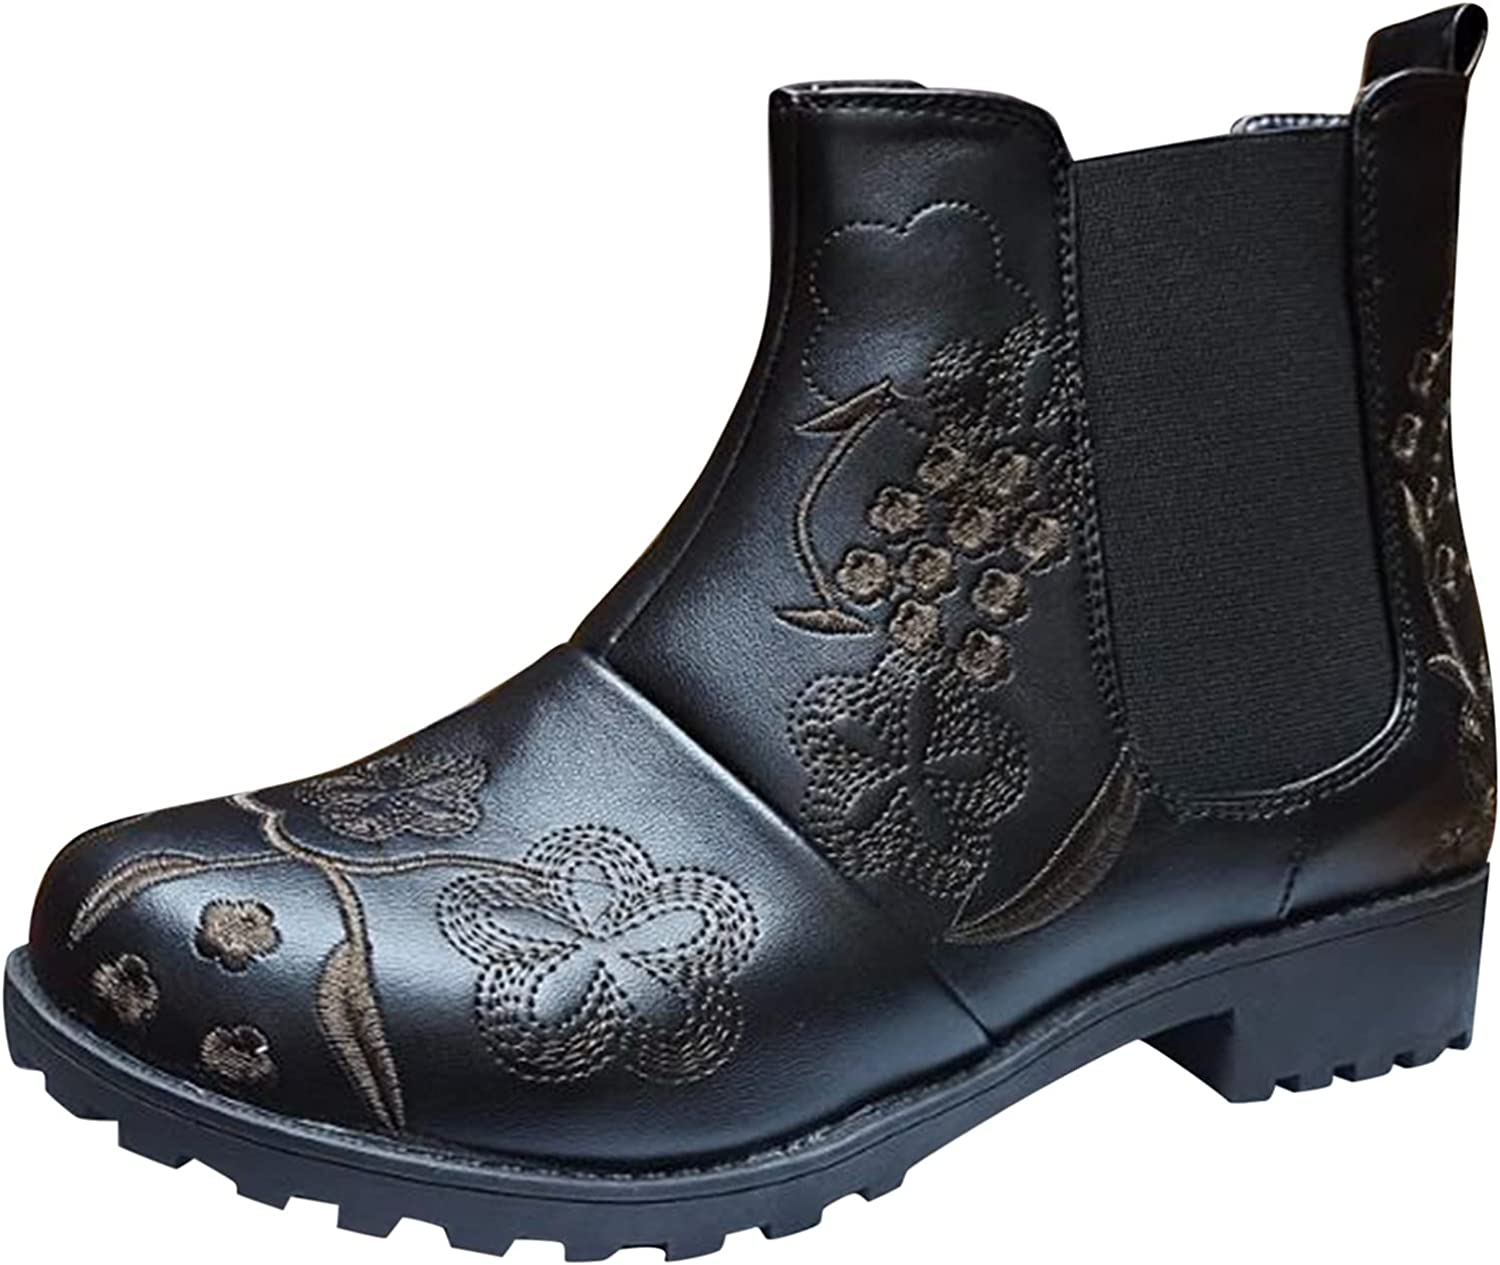 ZiSUGP Cowboy Boots For Women Retro Embroidered Low Heel Elastic Ankle Boots